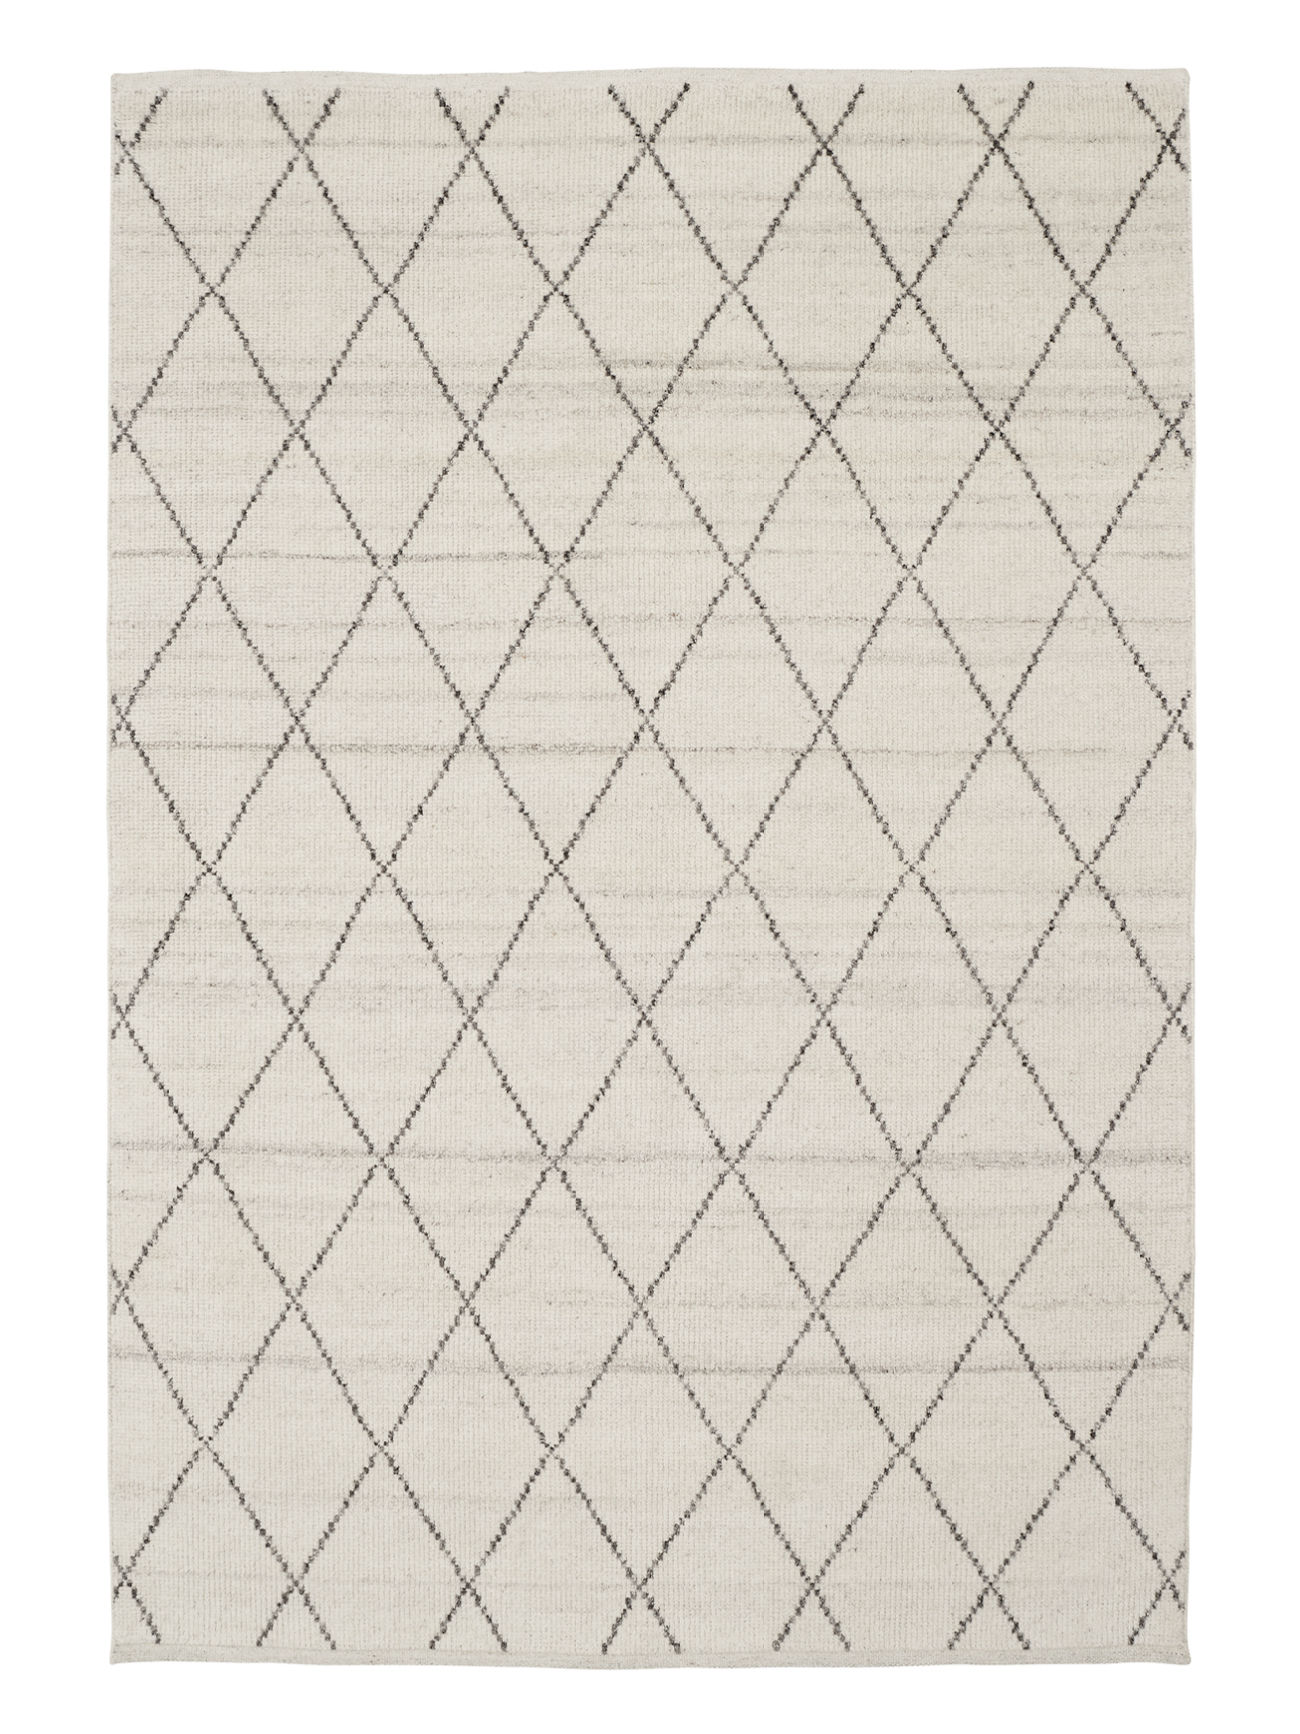 Atlas Berber Knot Rug - Natural